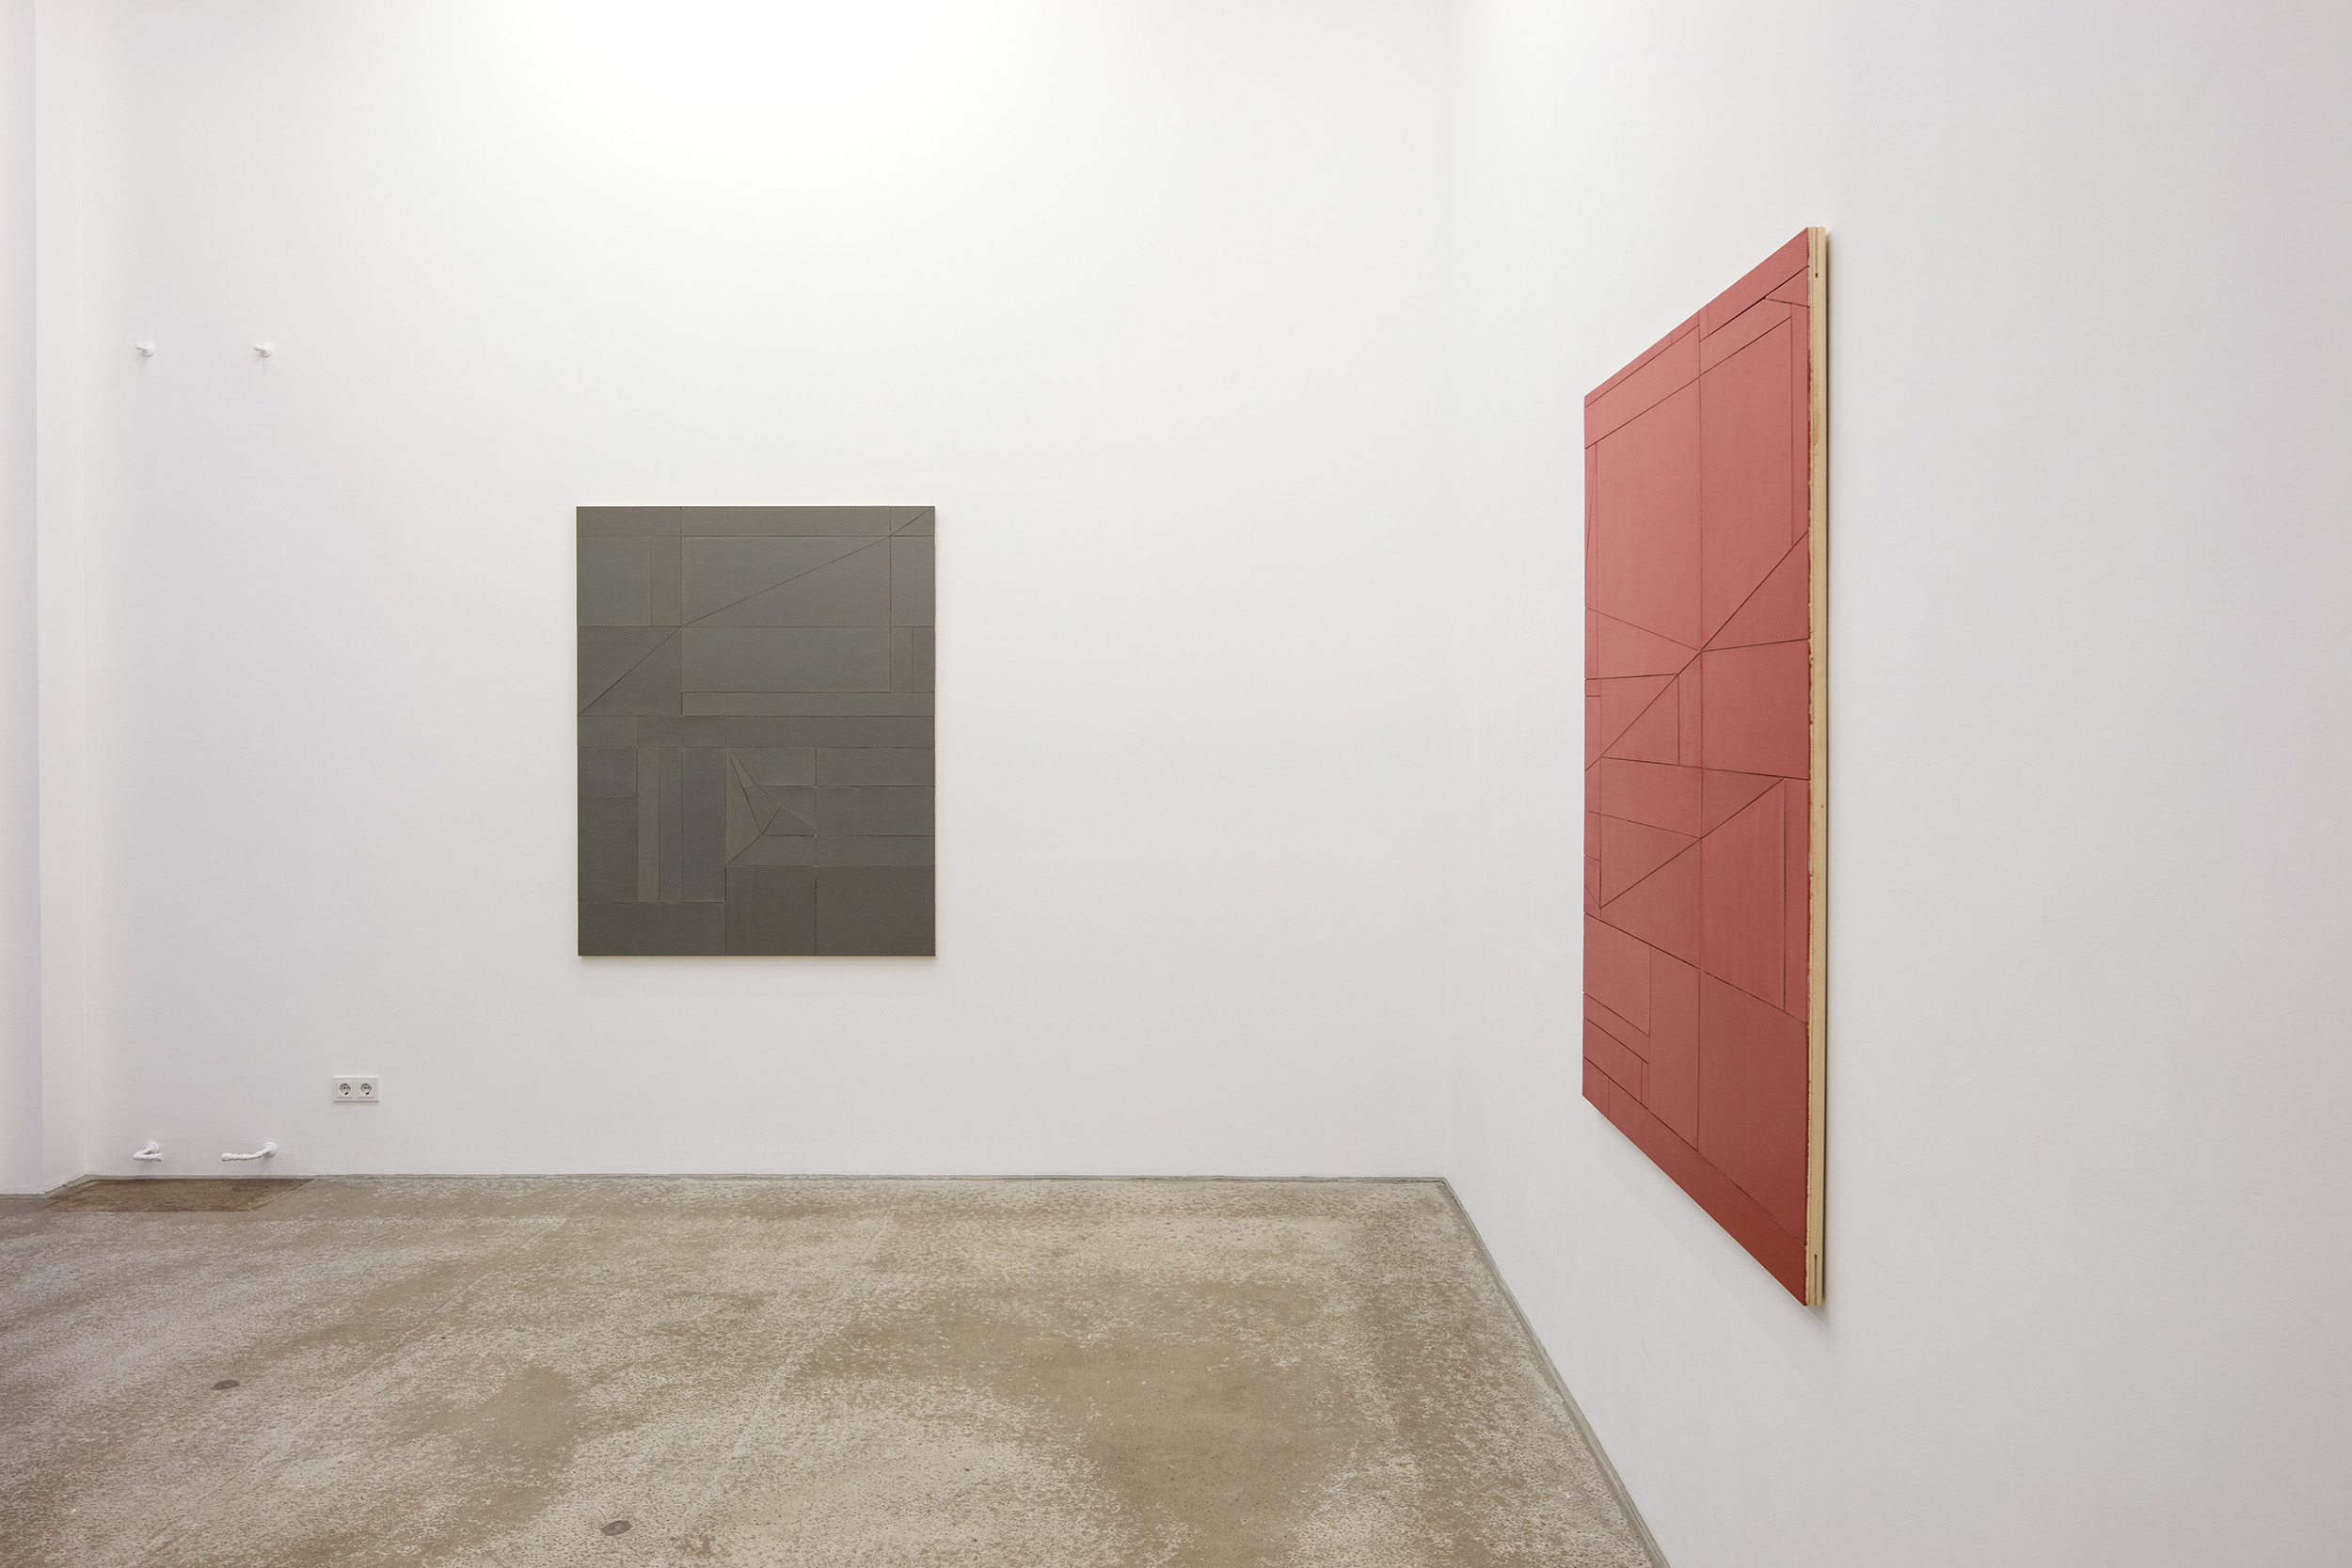 3 - Florian Schmit at Daniel Marzona Berlin - suggested by Ivan Seal